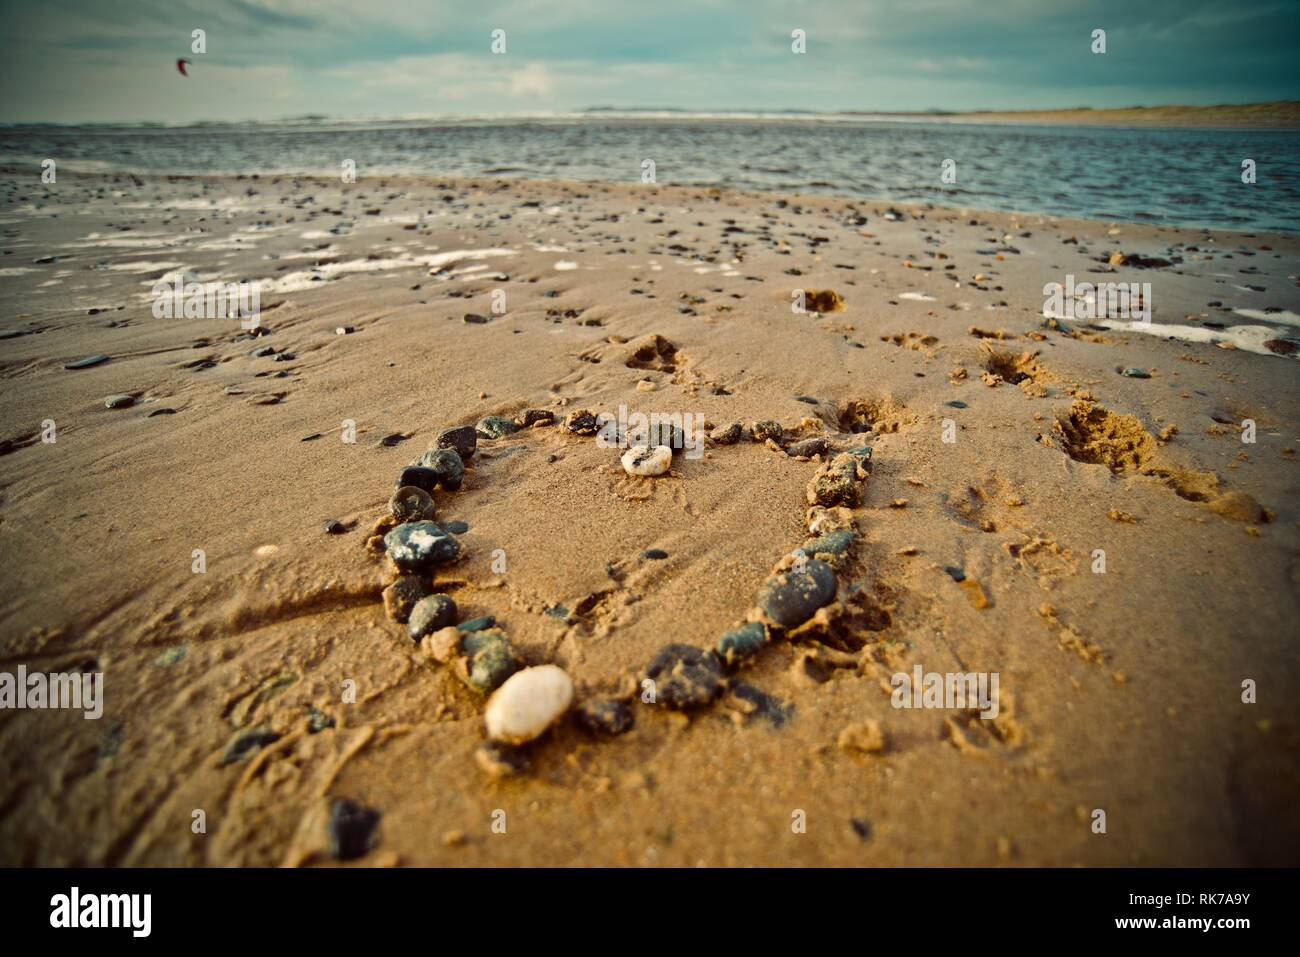 Love the beach, love the sea. A heart made of pebbles on the sand of a beach with the tide coming in, Rhosneigr, Anglesey, North Wales, UK Stock Photo